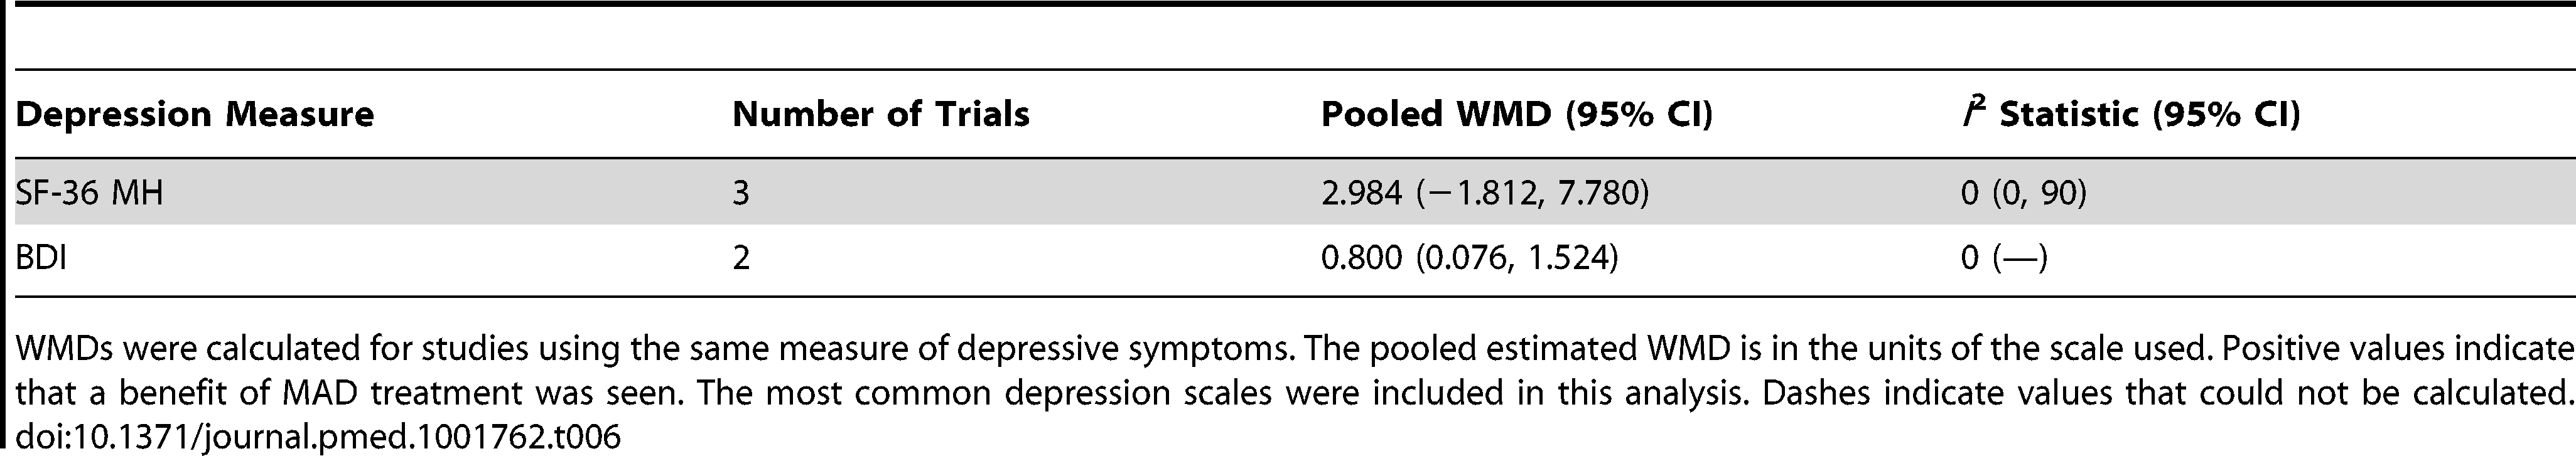 Pooled weighted mean differences in depression score for MAD treatment.